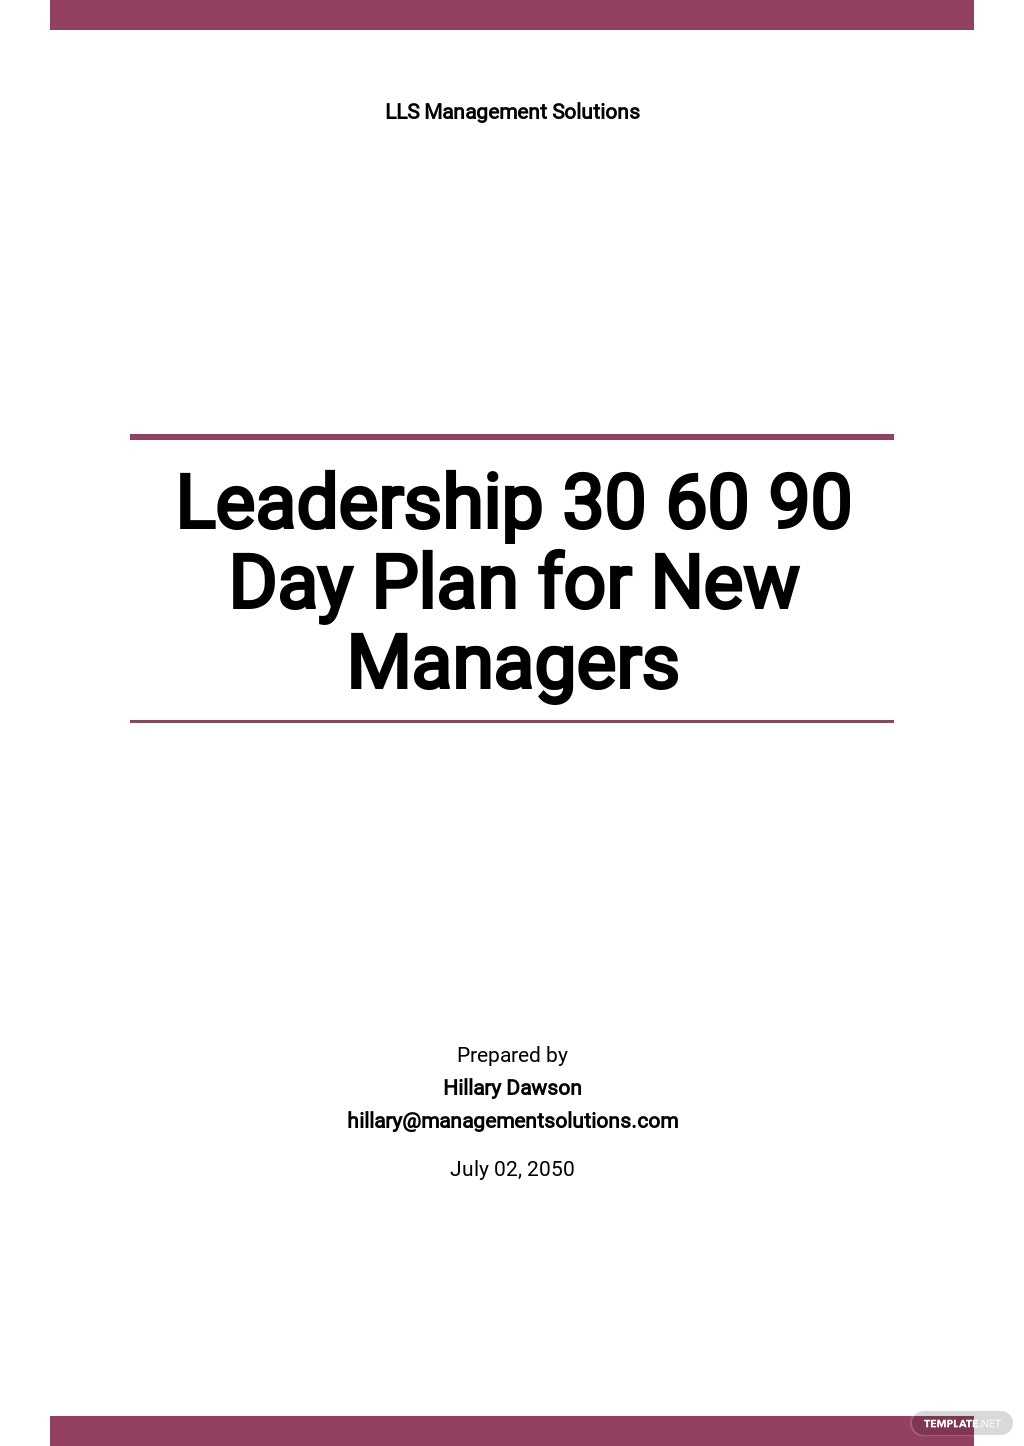 Leadership 30 60 90 Day Plan Template for New Managers.jpe